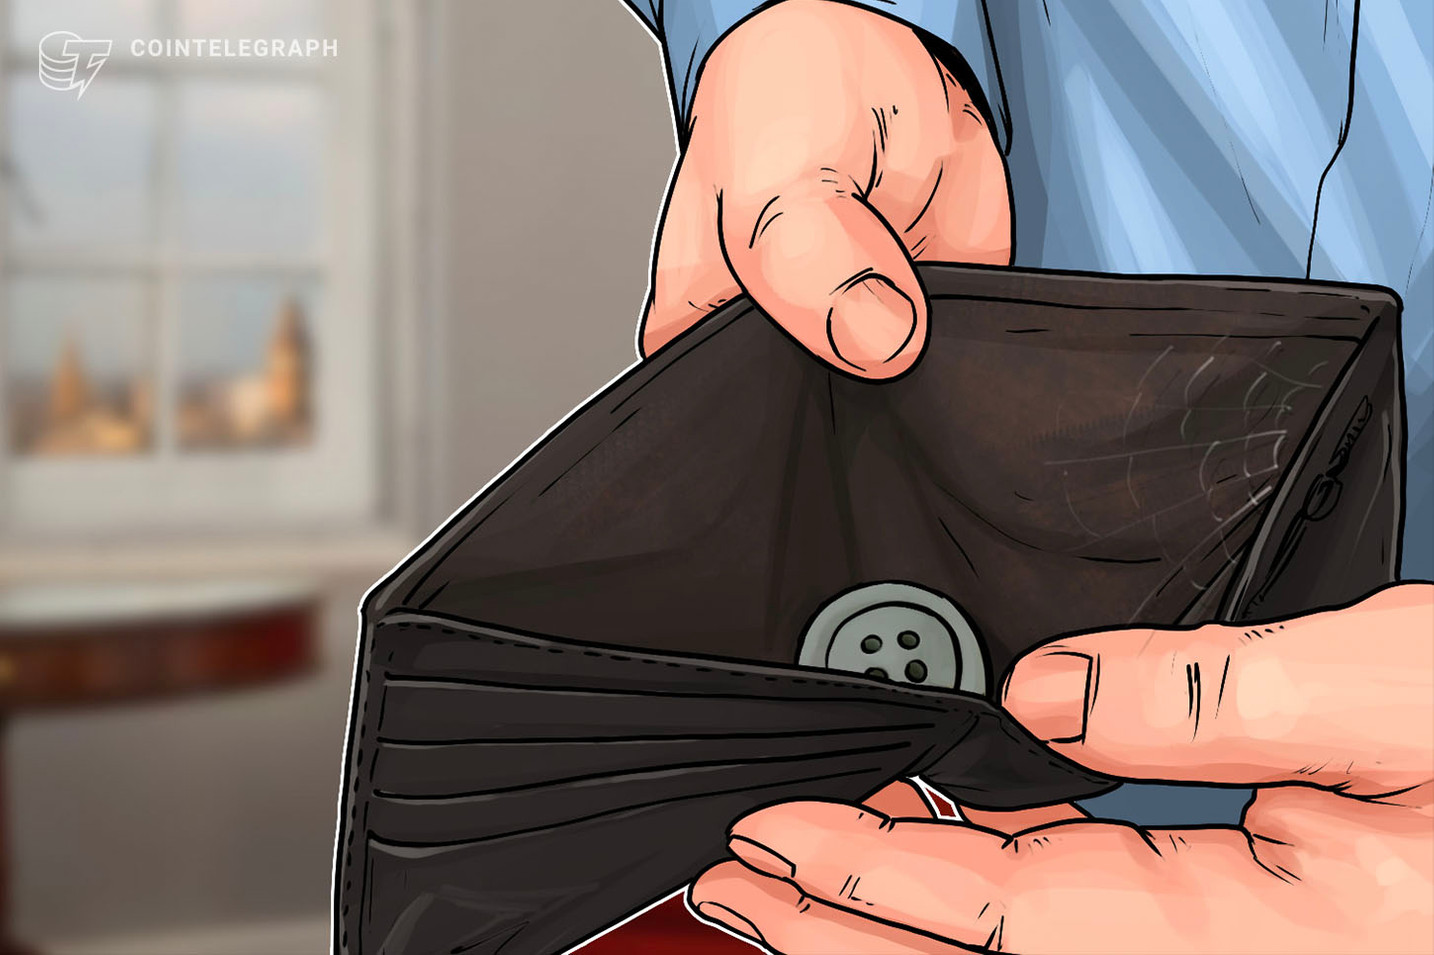 'I destroyed my life': Uniswap trader spends $9,500 in fees on $120 transaction